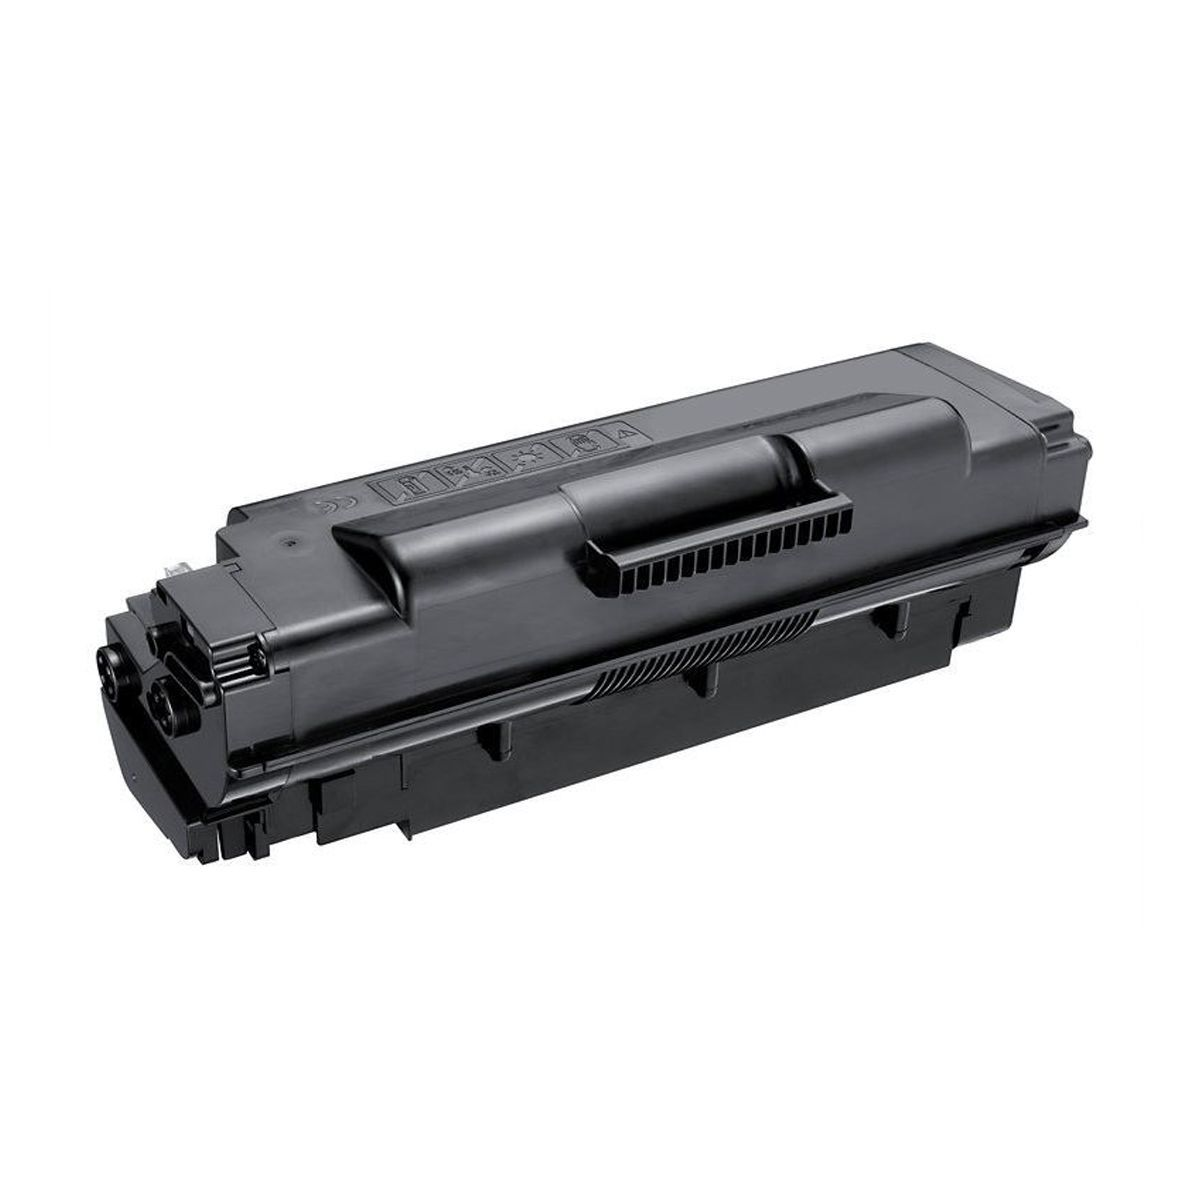 Toner Samsung D307 307 - ML5012ND ML5015ND ML4510ND ML4512ND Compativel